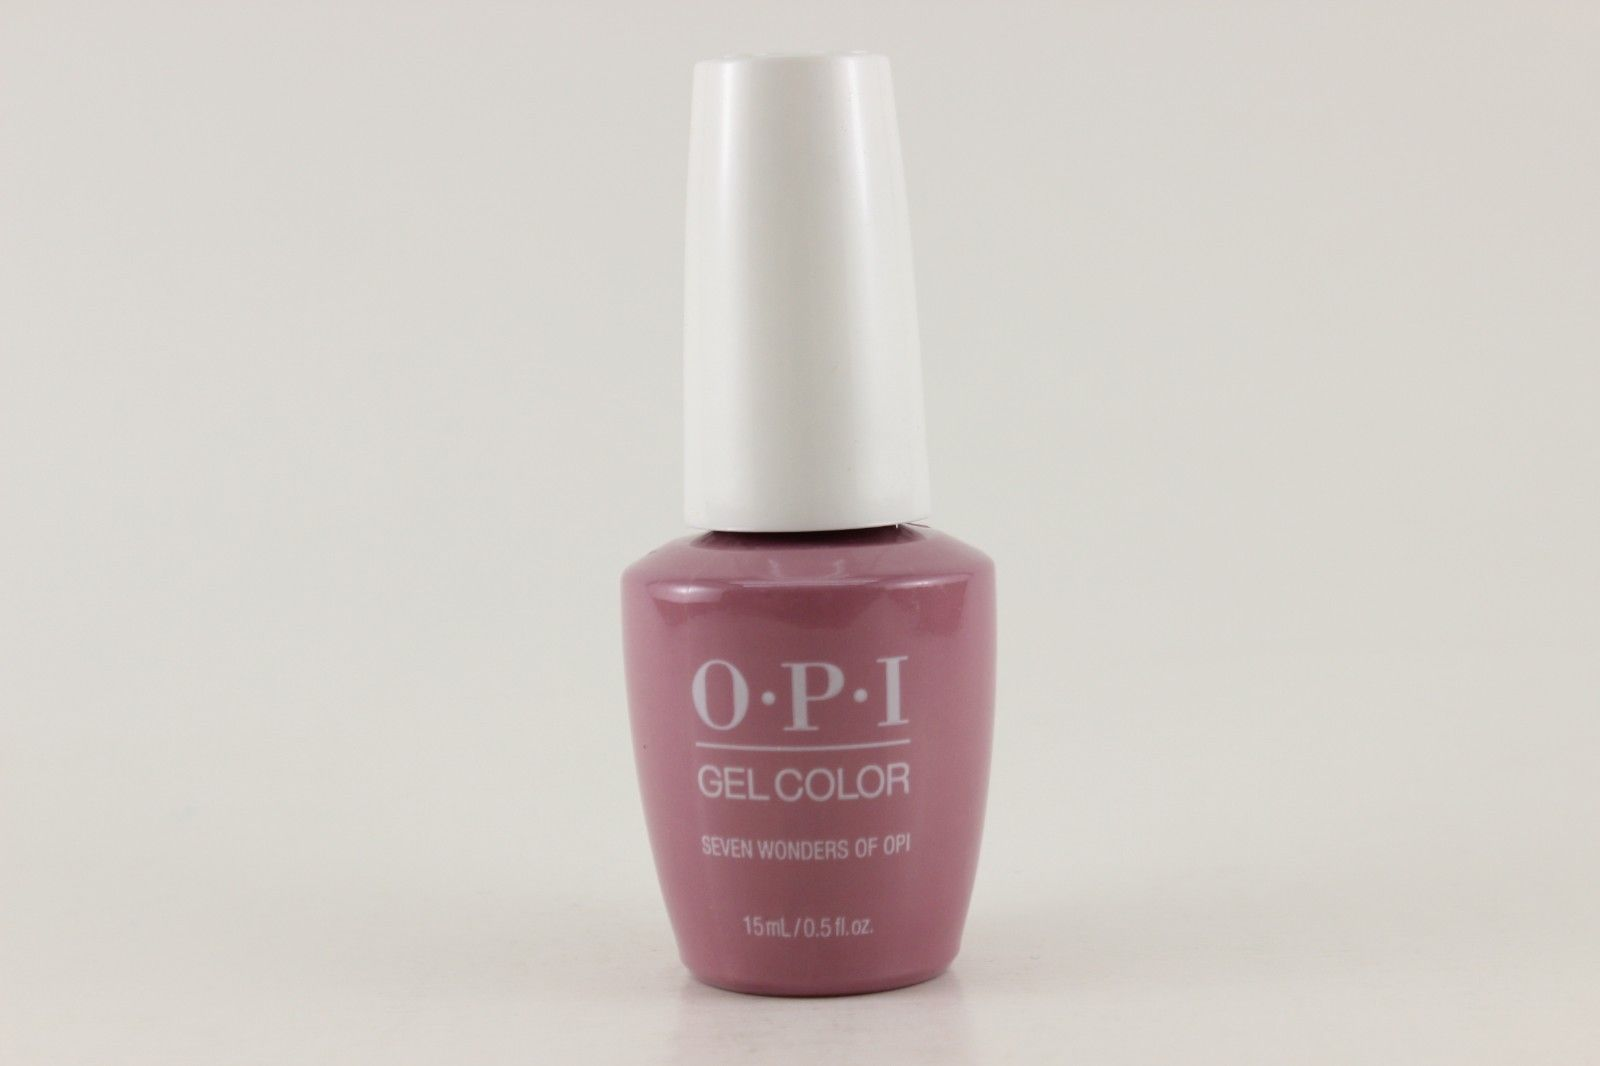 GCP32- OPI Gelcolor- Peru Collection-Seven Wonders of OPI, .5oz